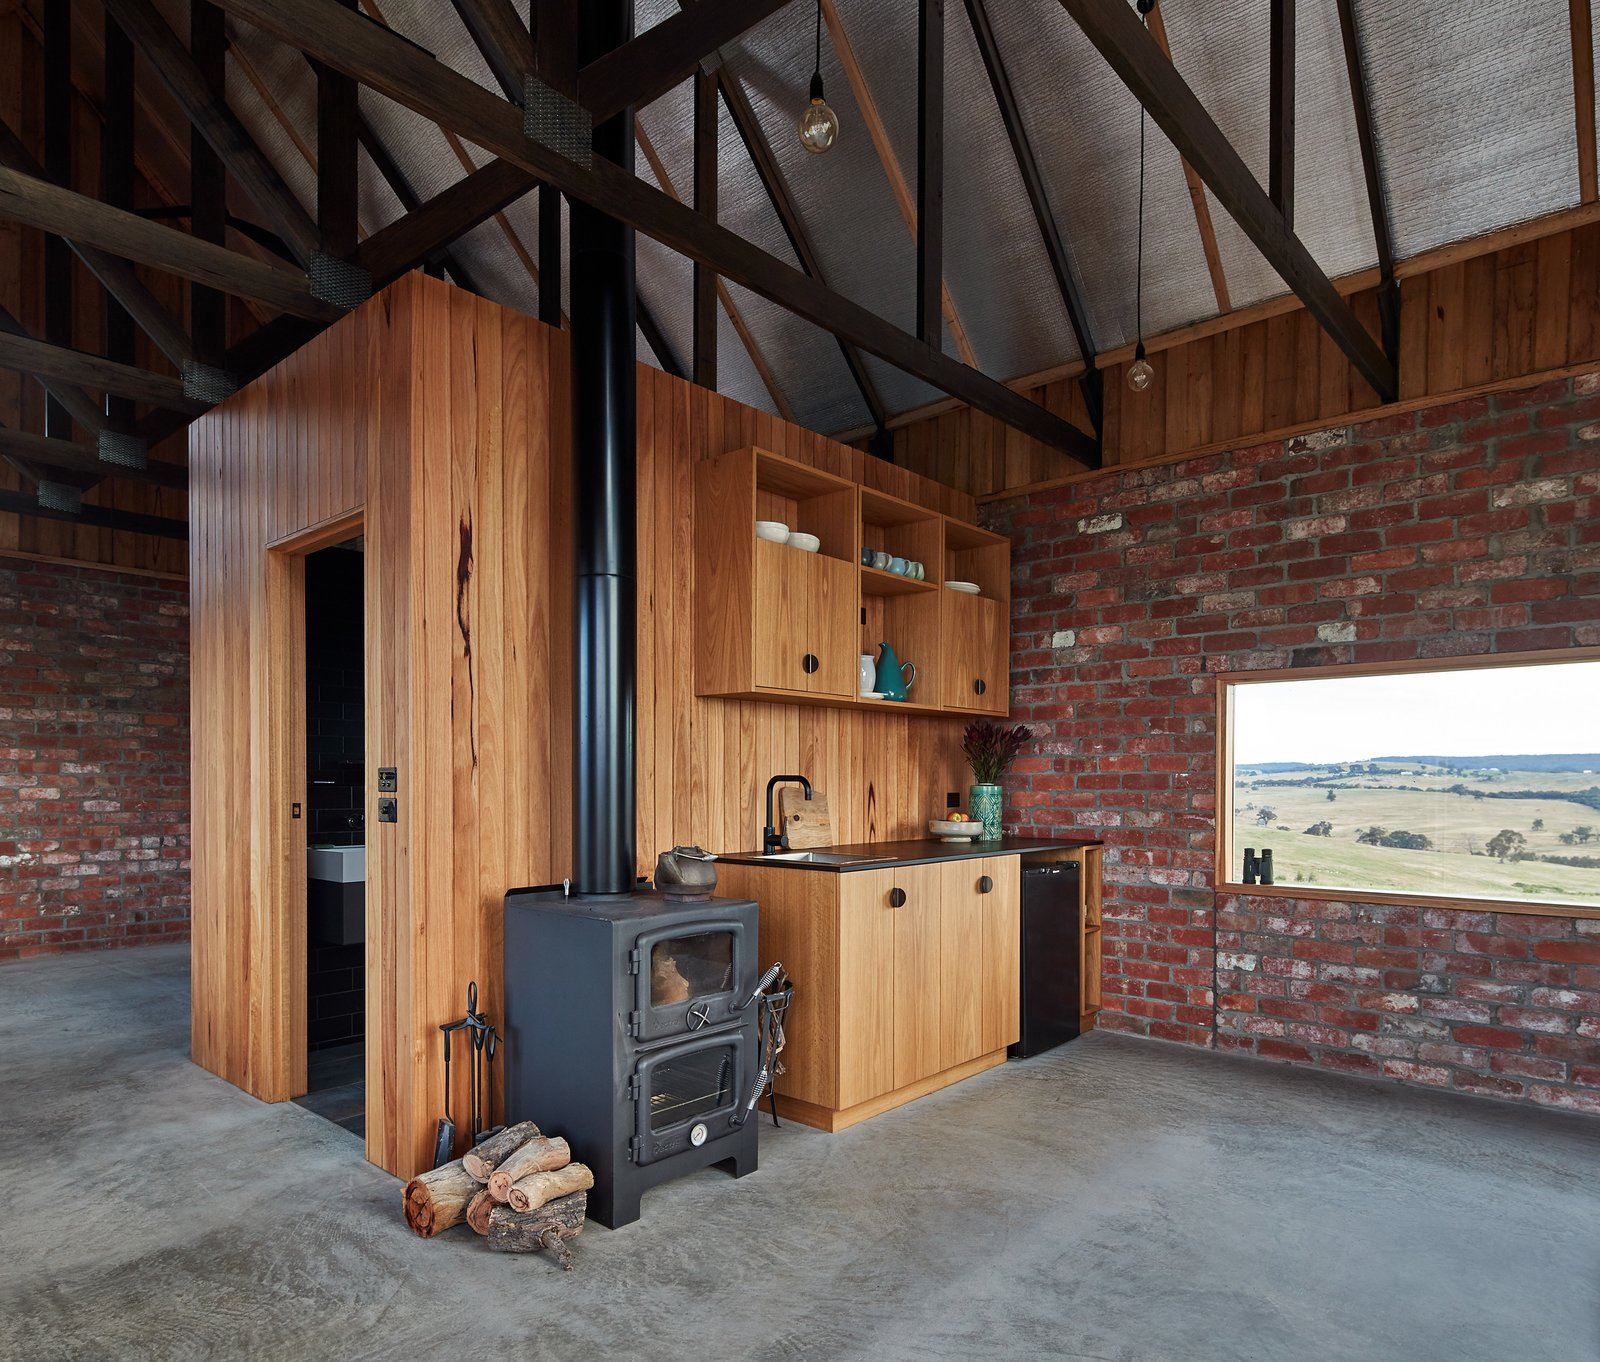 Kitchen, Drop In, Refrigerator, Ceiling, Pendant, Wood, Concrete, and Wood A central core houses the bathroom and divides the bedroom from the kitchen/living area.    Best Kitchen Concrete Refrigerator Wood Ceiling Drop In Wood Photos from Simplicity Reigns at This Off-Grid Australian Retreat